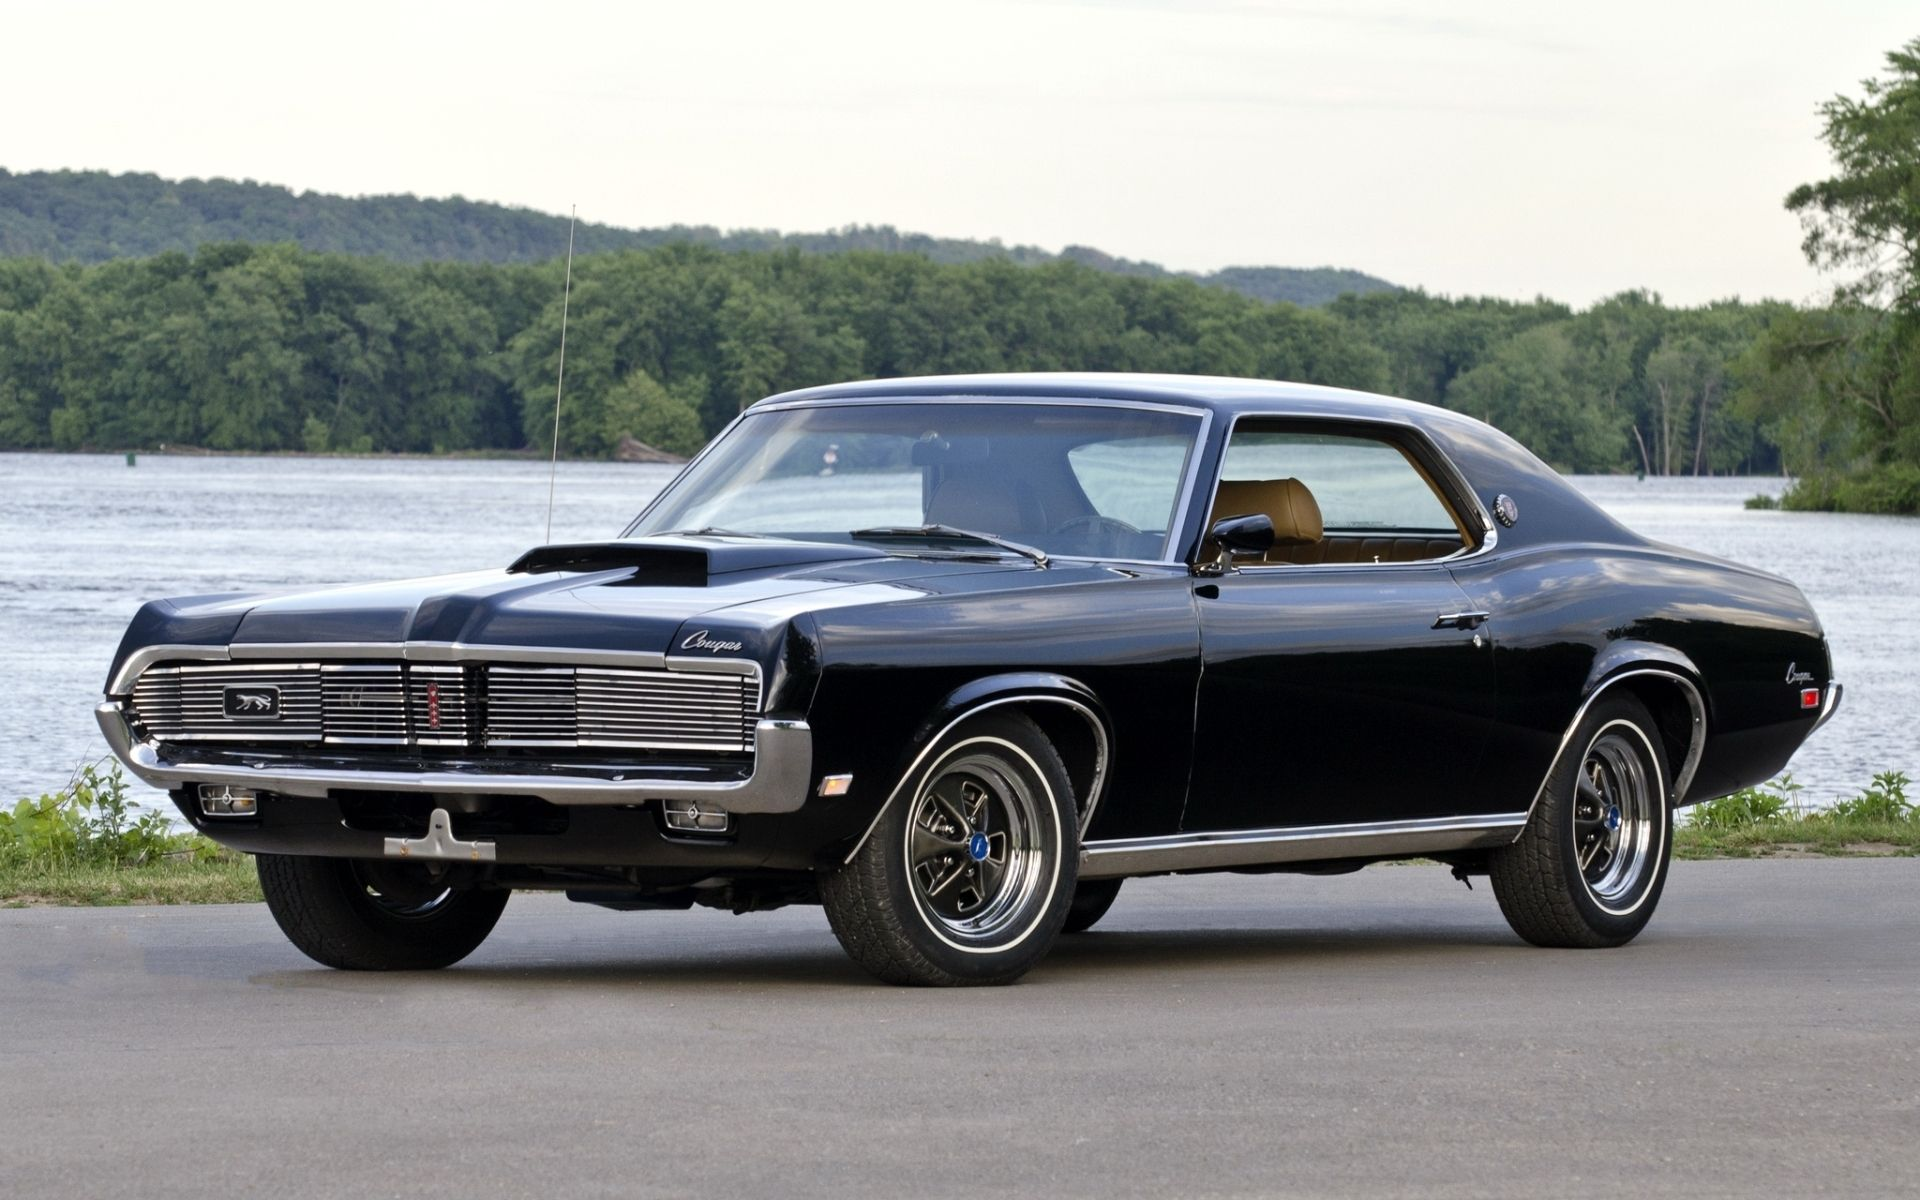 1969 Mercury Cougar XR7 | Ford Mustang & Shelby | Pinterest | Car ...